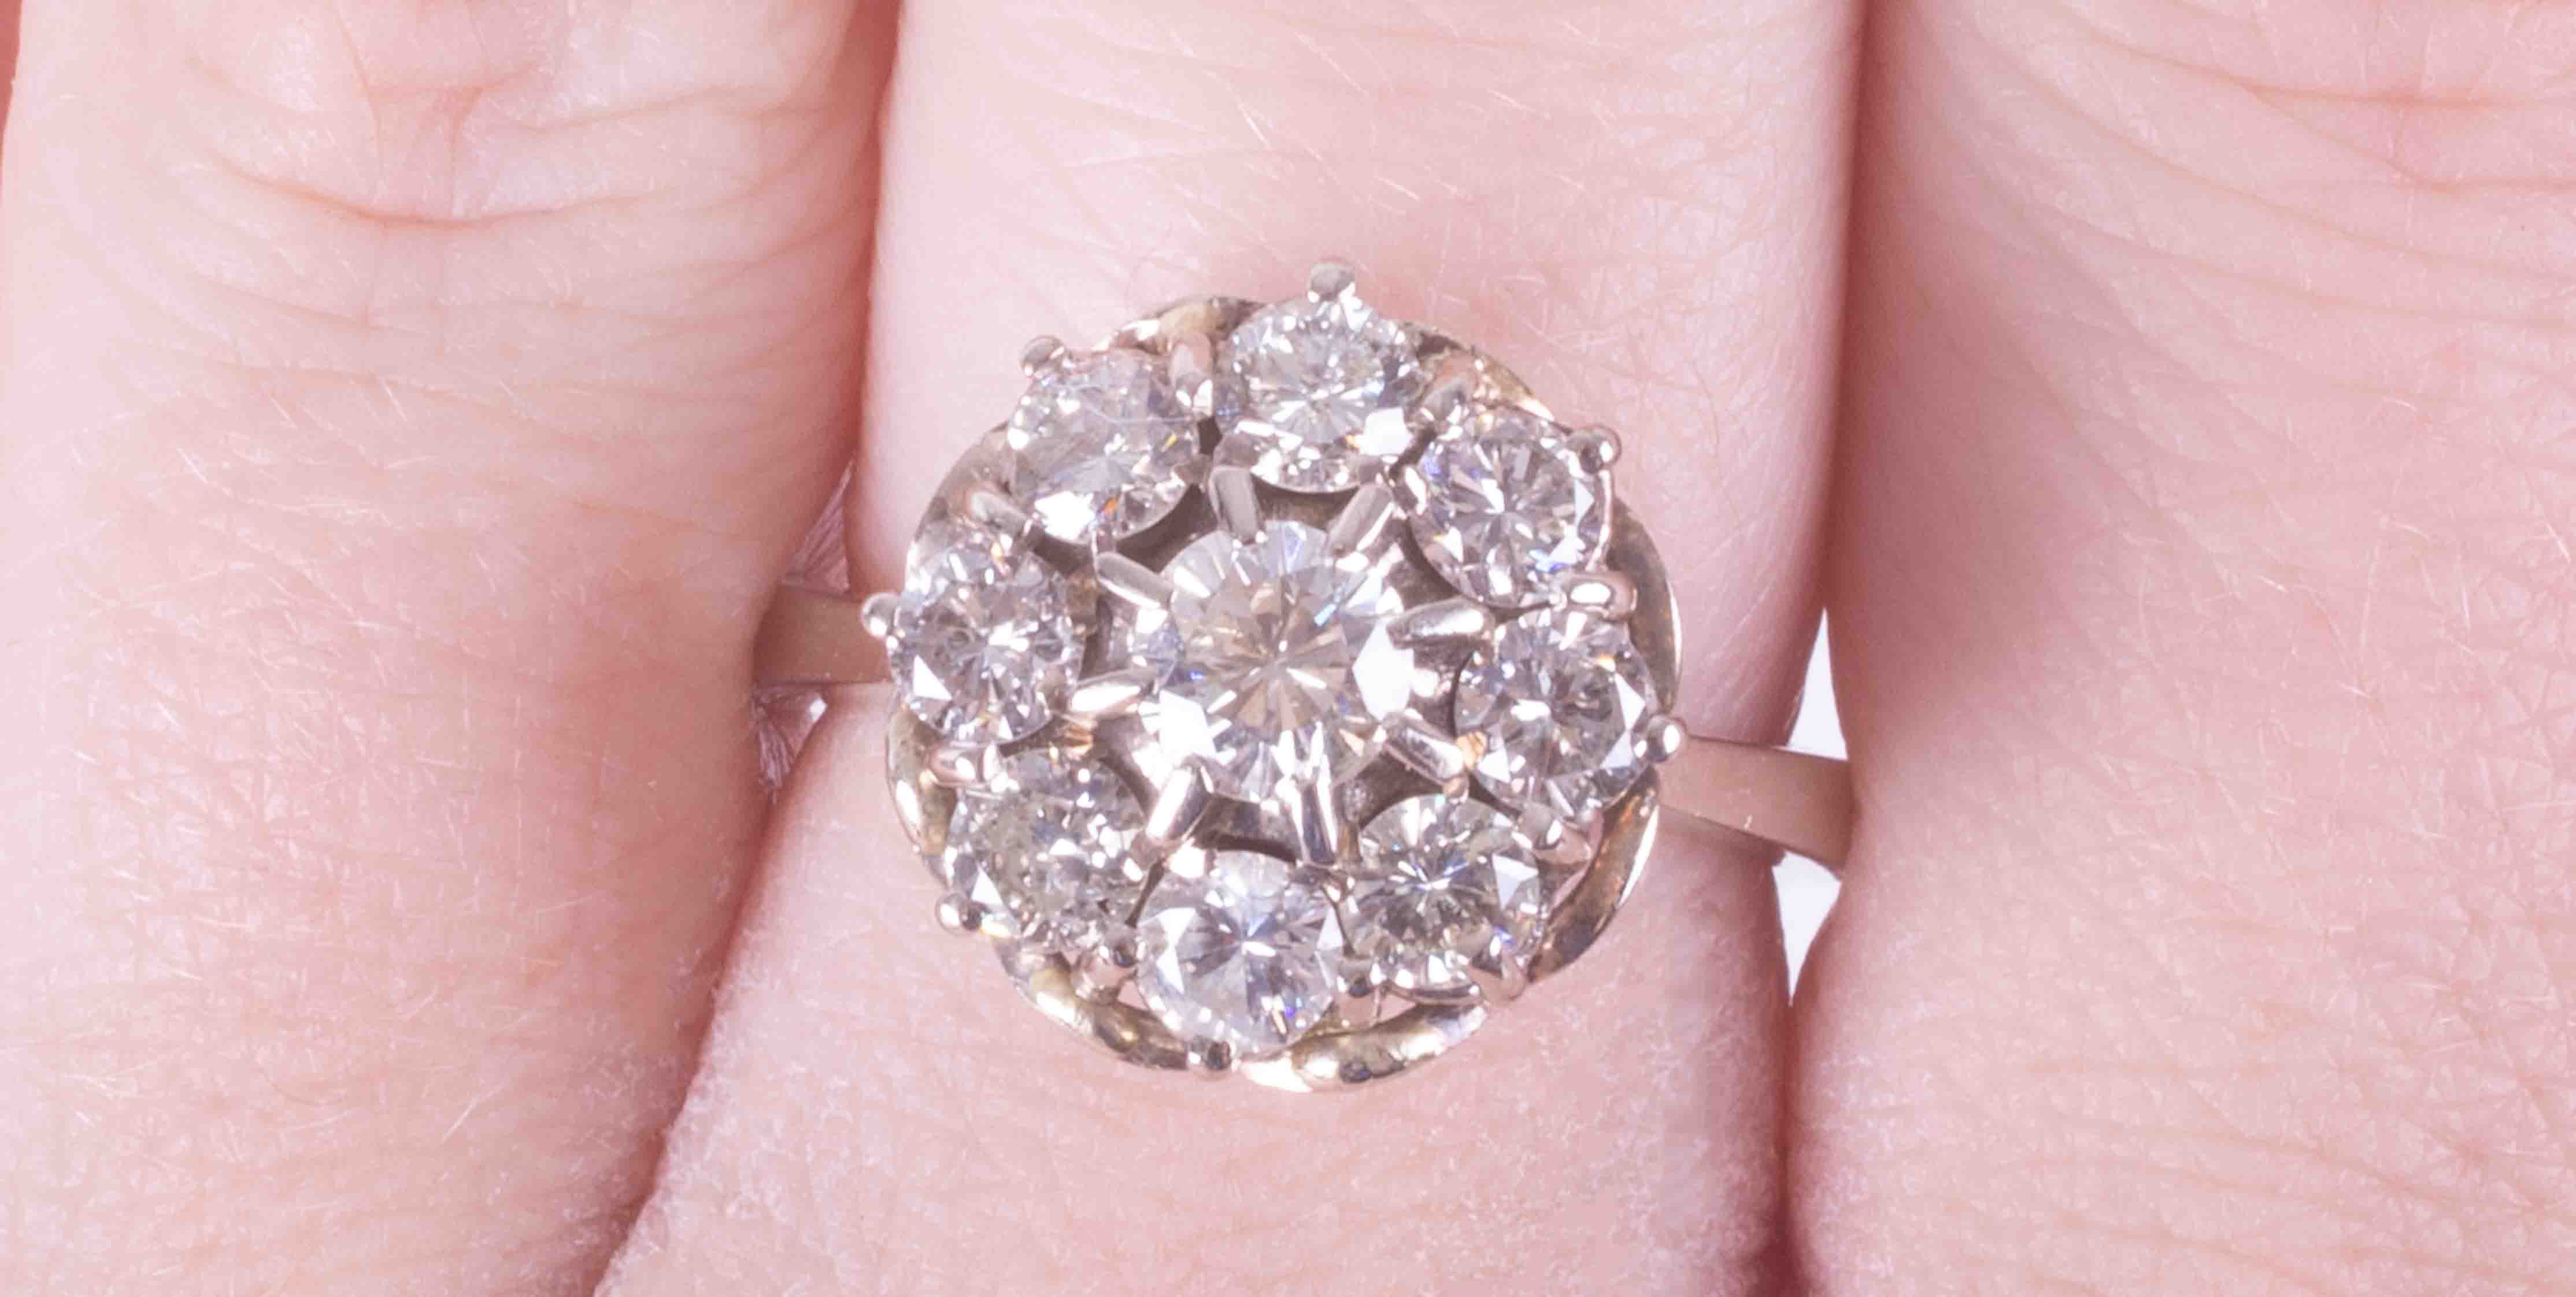 An 18ct white gold flower style cluster ring set approx. 1.80 carats of round brilliant cut - Image 2 of 2